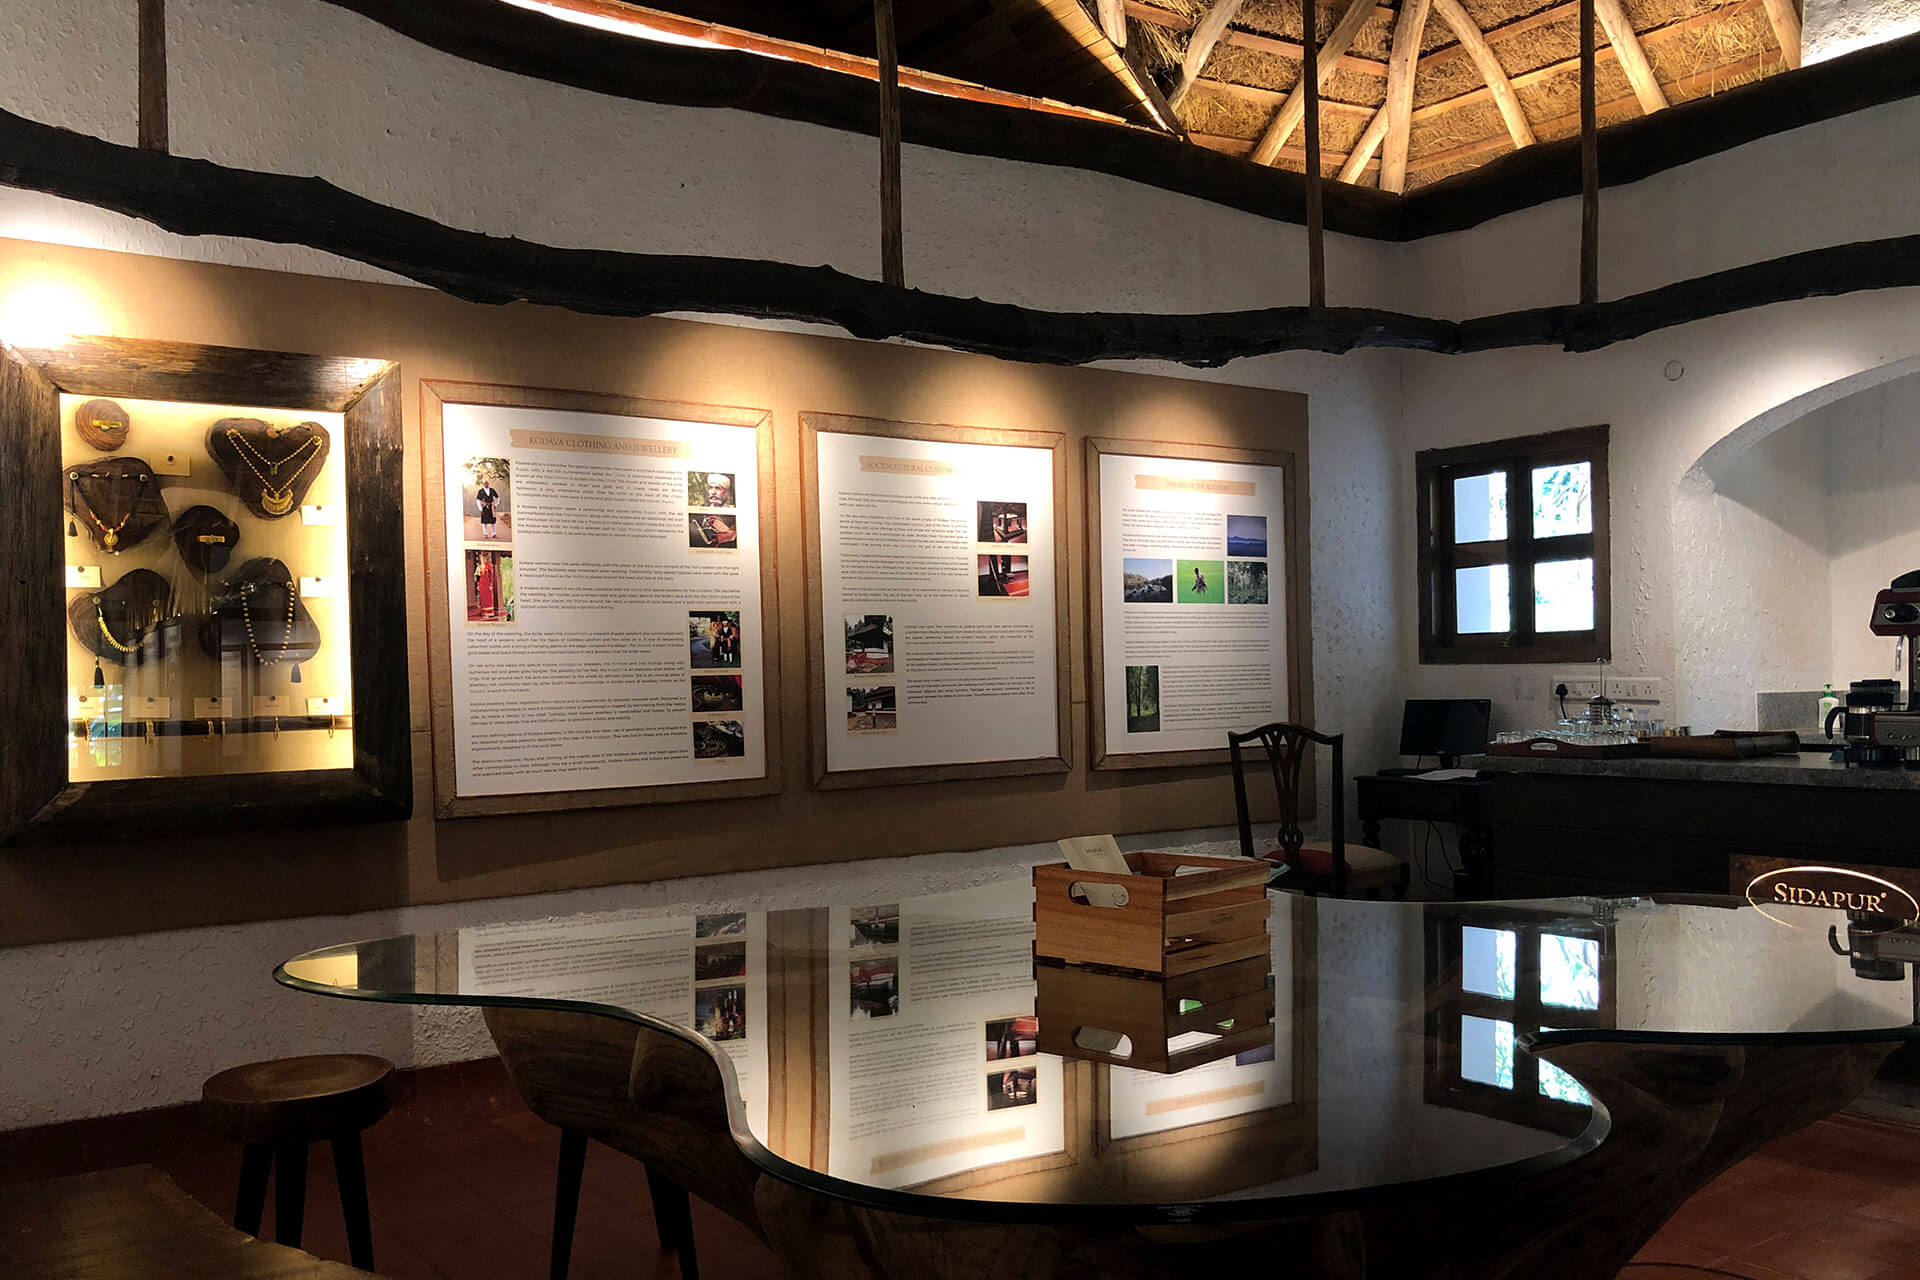 The Kodava wall at the Sidapur Museum of Coffee & Culture